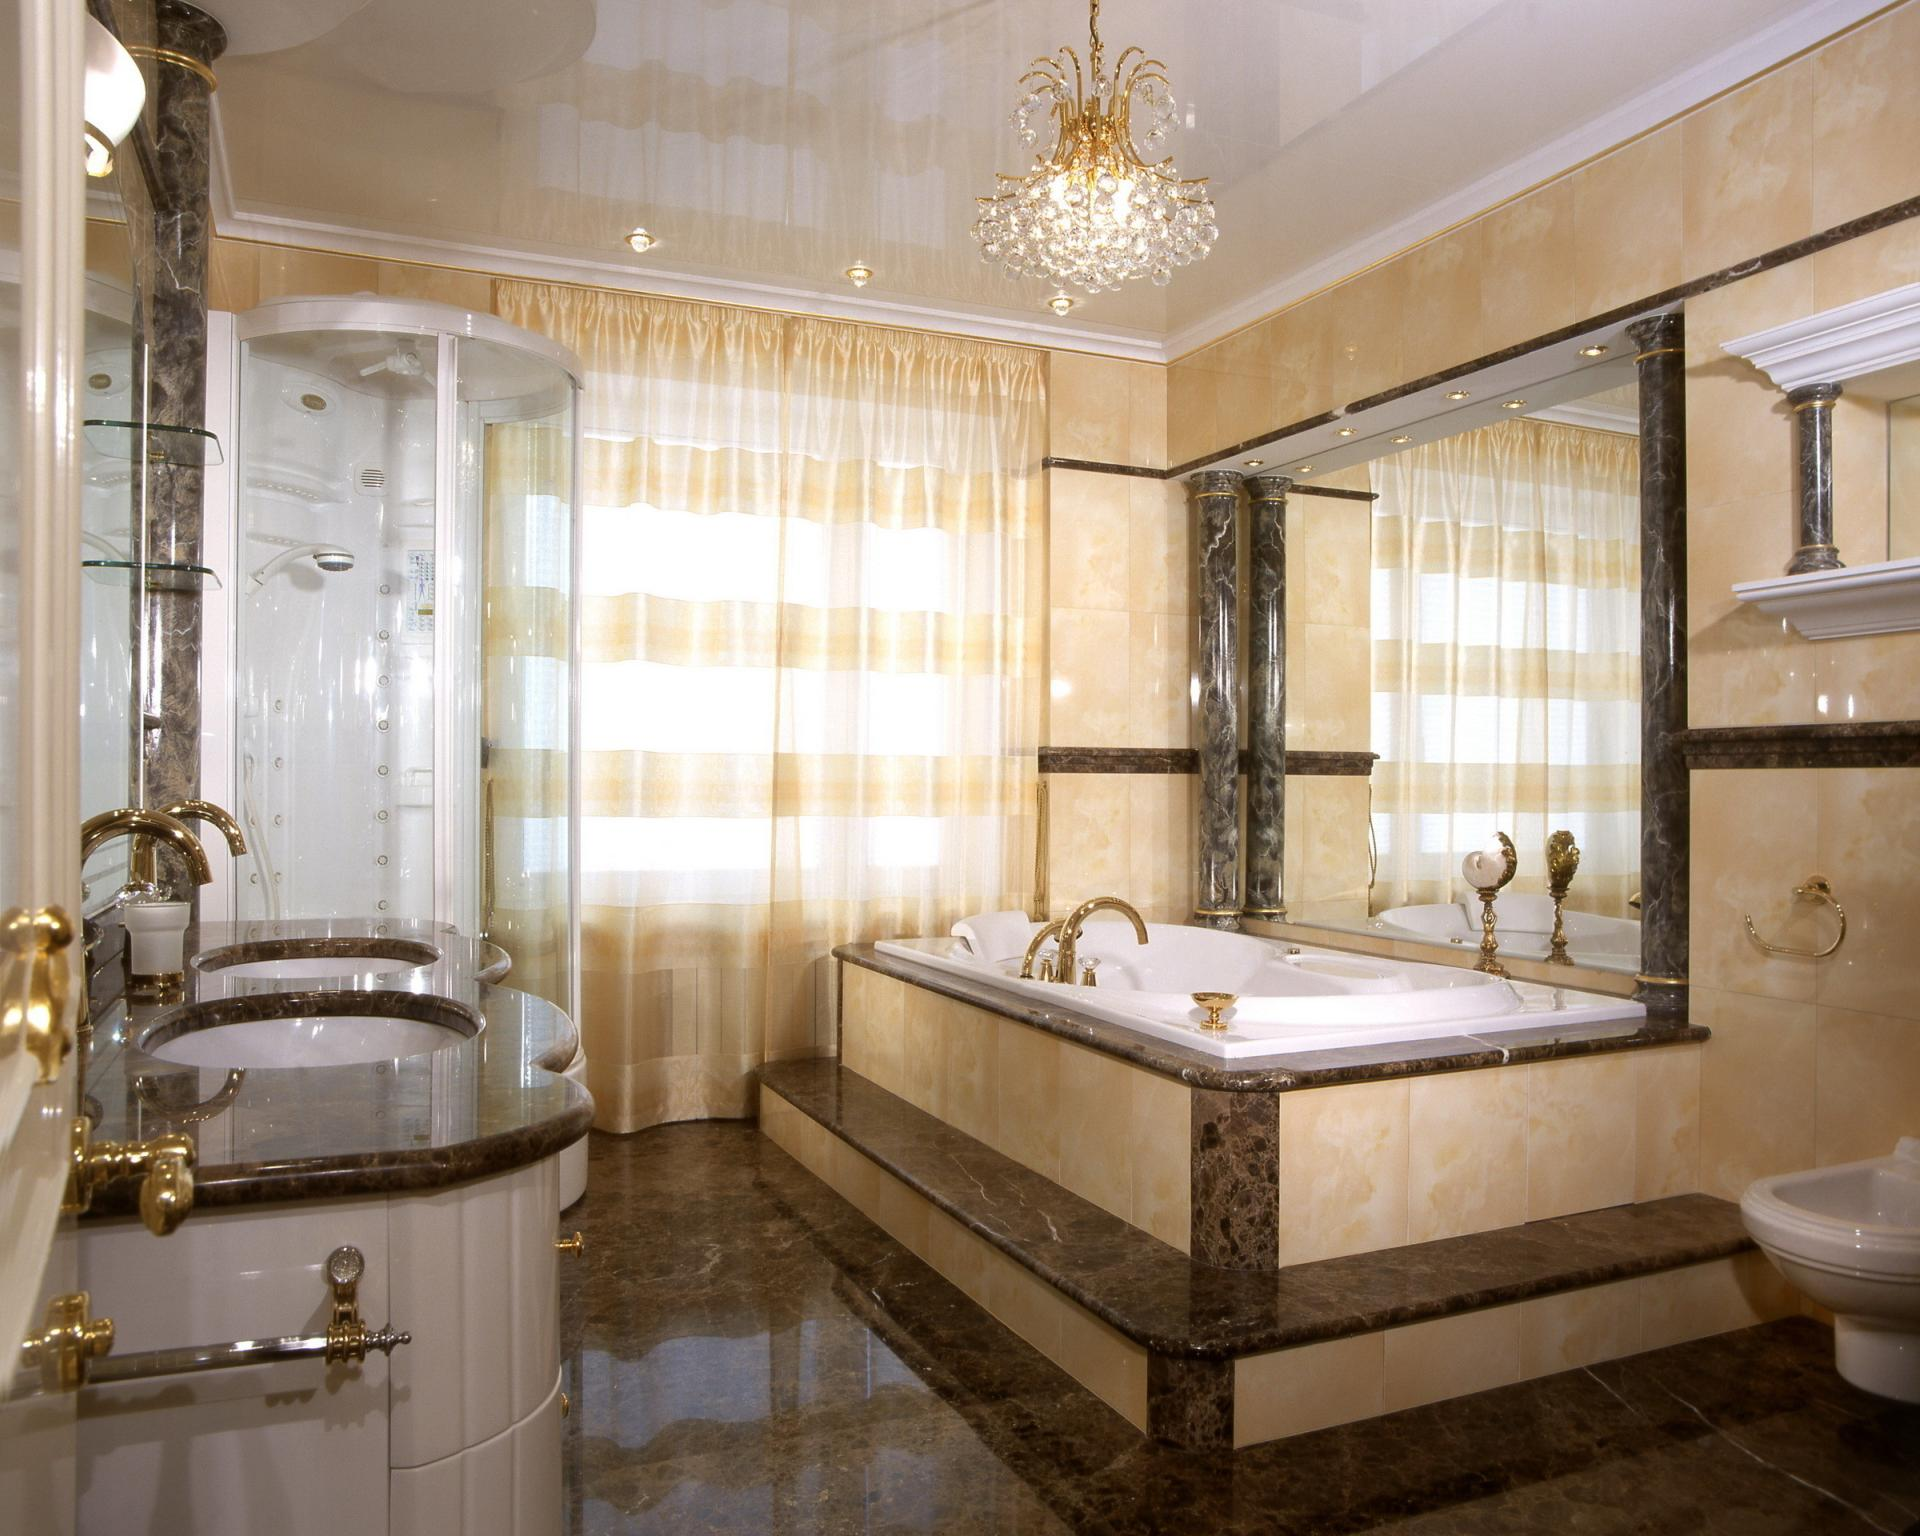 Gilded wall finishing and dark brown accents for traditional styled bathroom